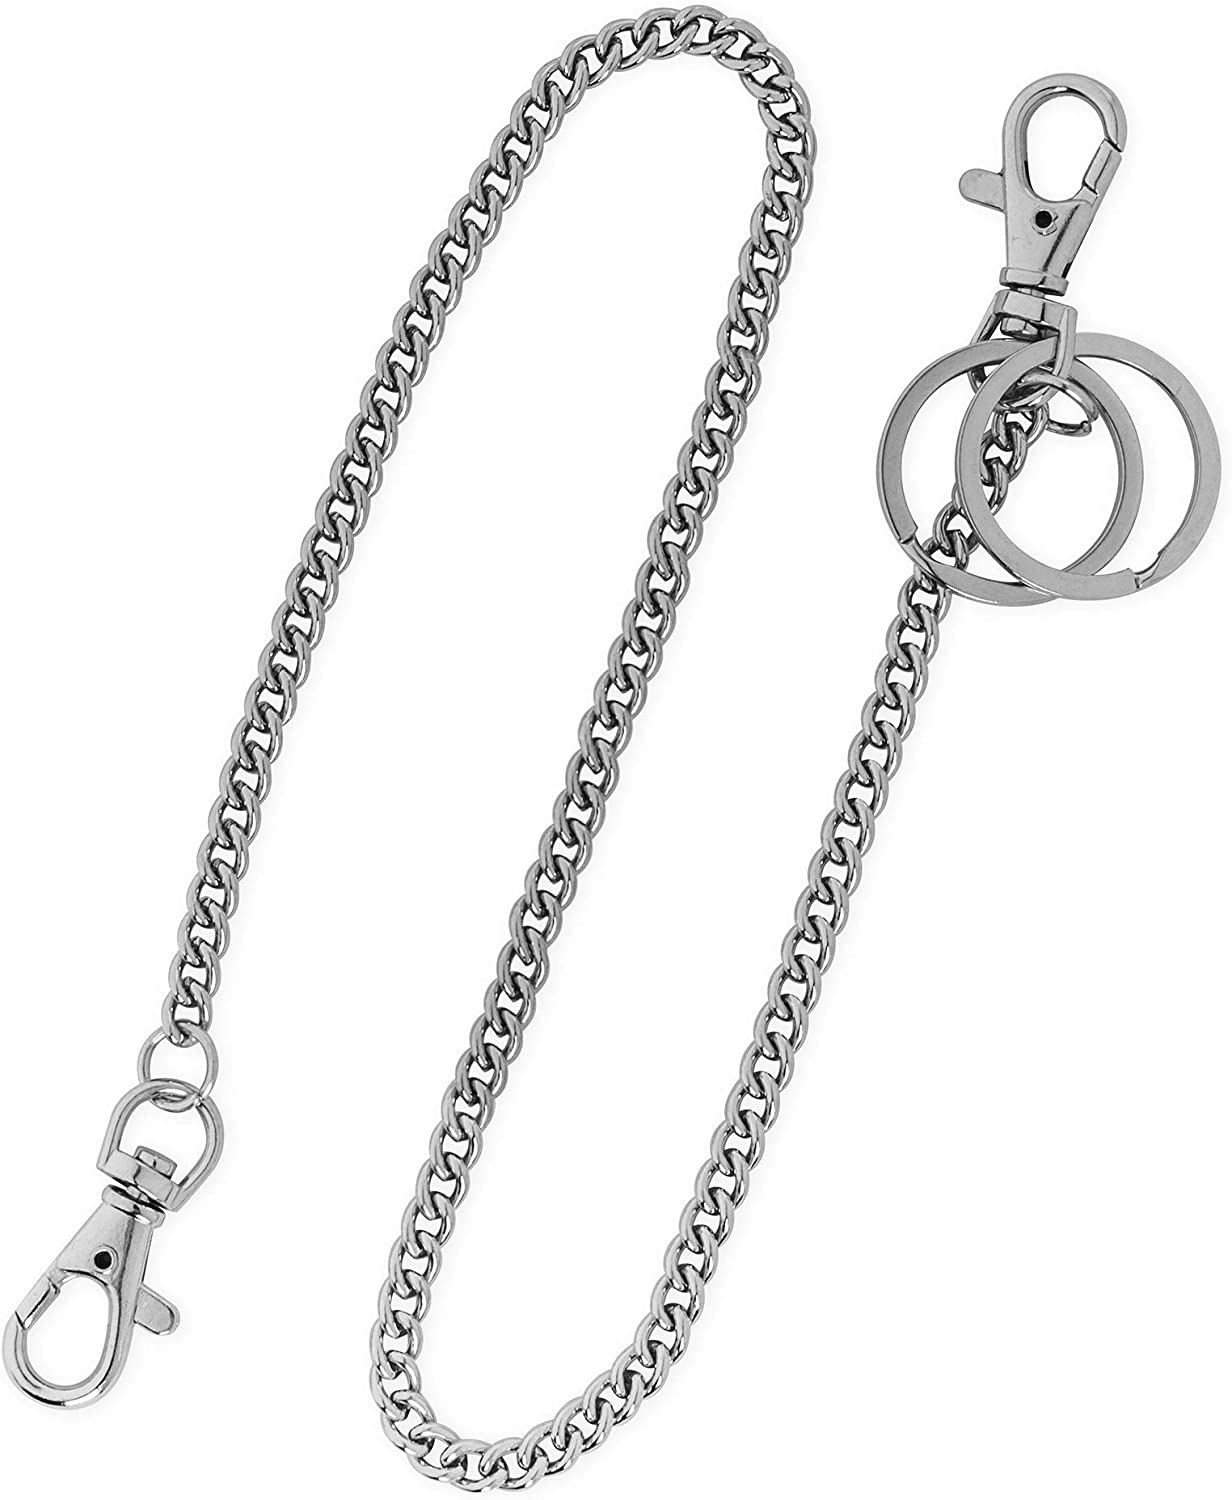 Keys Purse Handbag Strap and Traveling Wallet 18 Silver Nickel Plated Pocket Keychain String with Both Ends Lobster Claw Clasp Trigger Snap Handle for Belt Loop